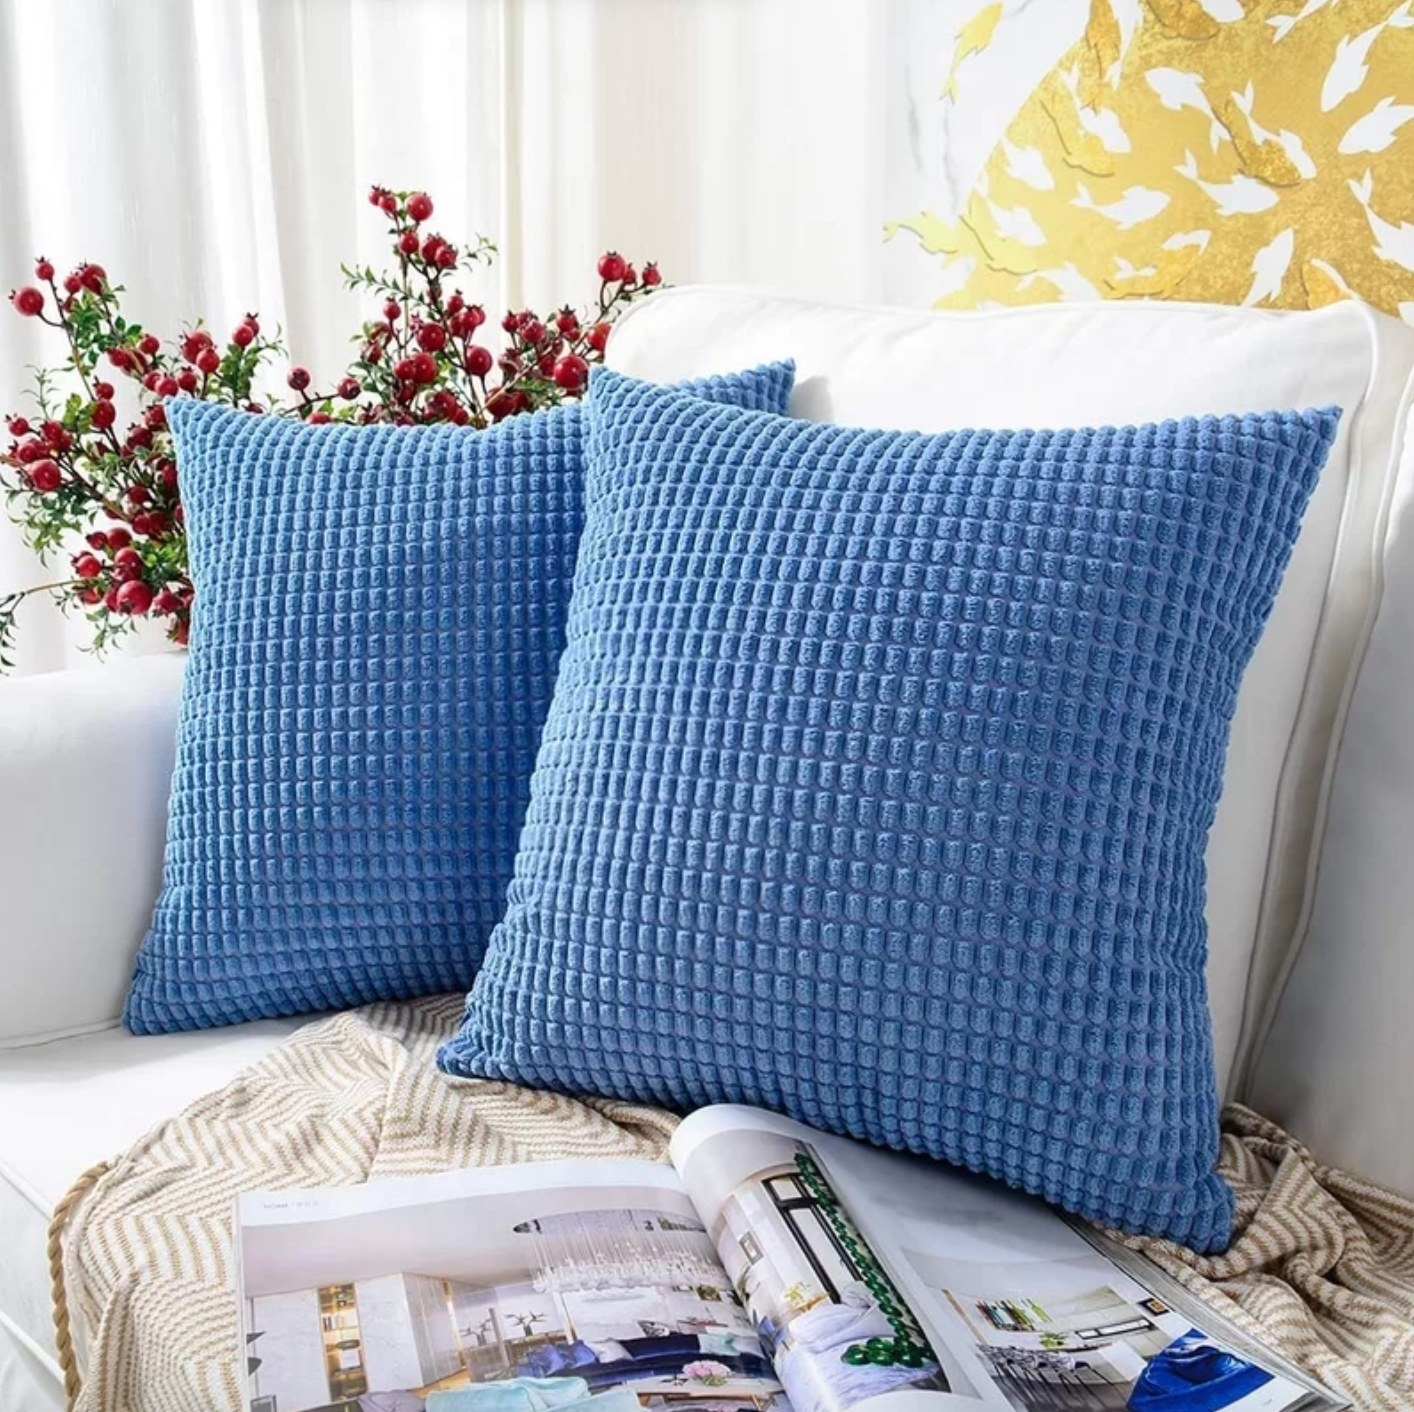 The set of two square pillow covers in pastel blue